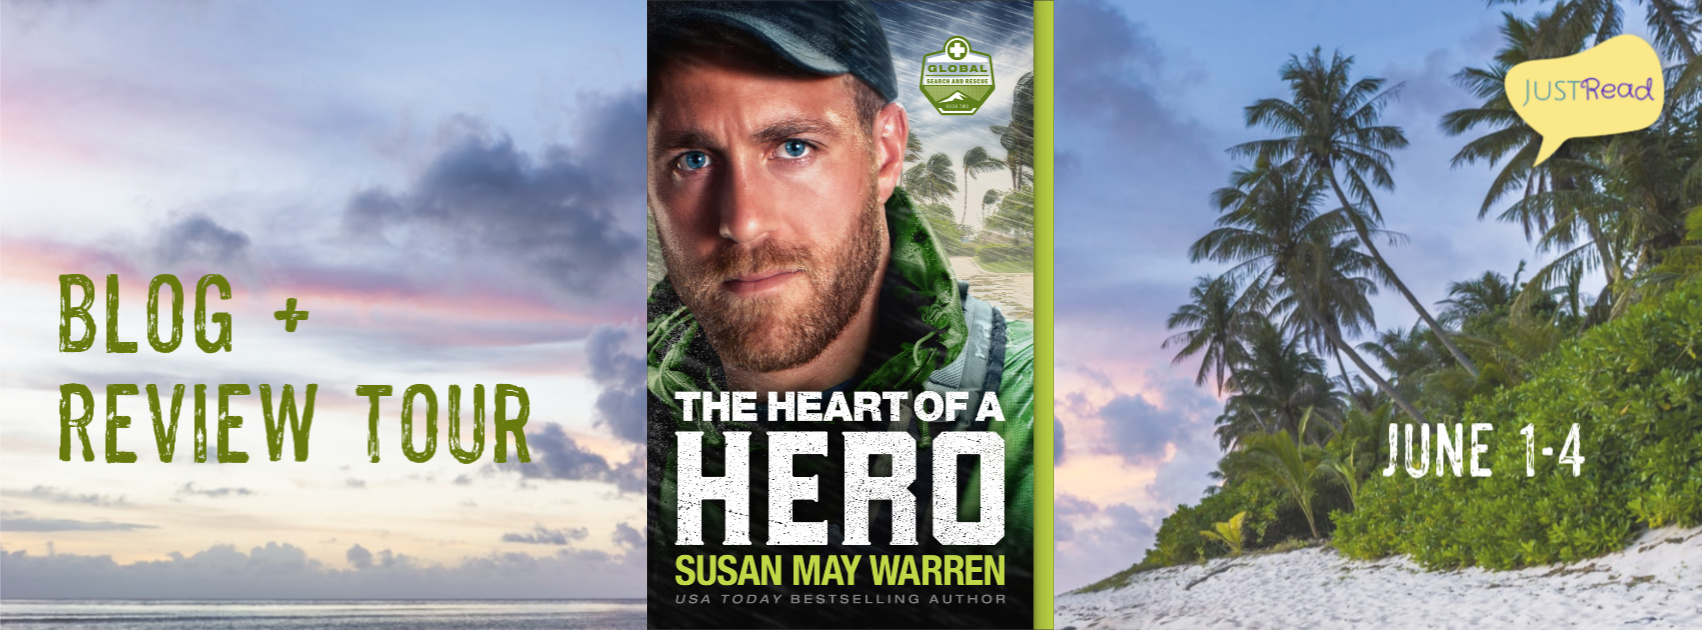 Heart of a Hero by Susan May Warren - Book Review, Preview